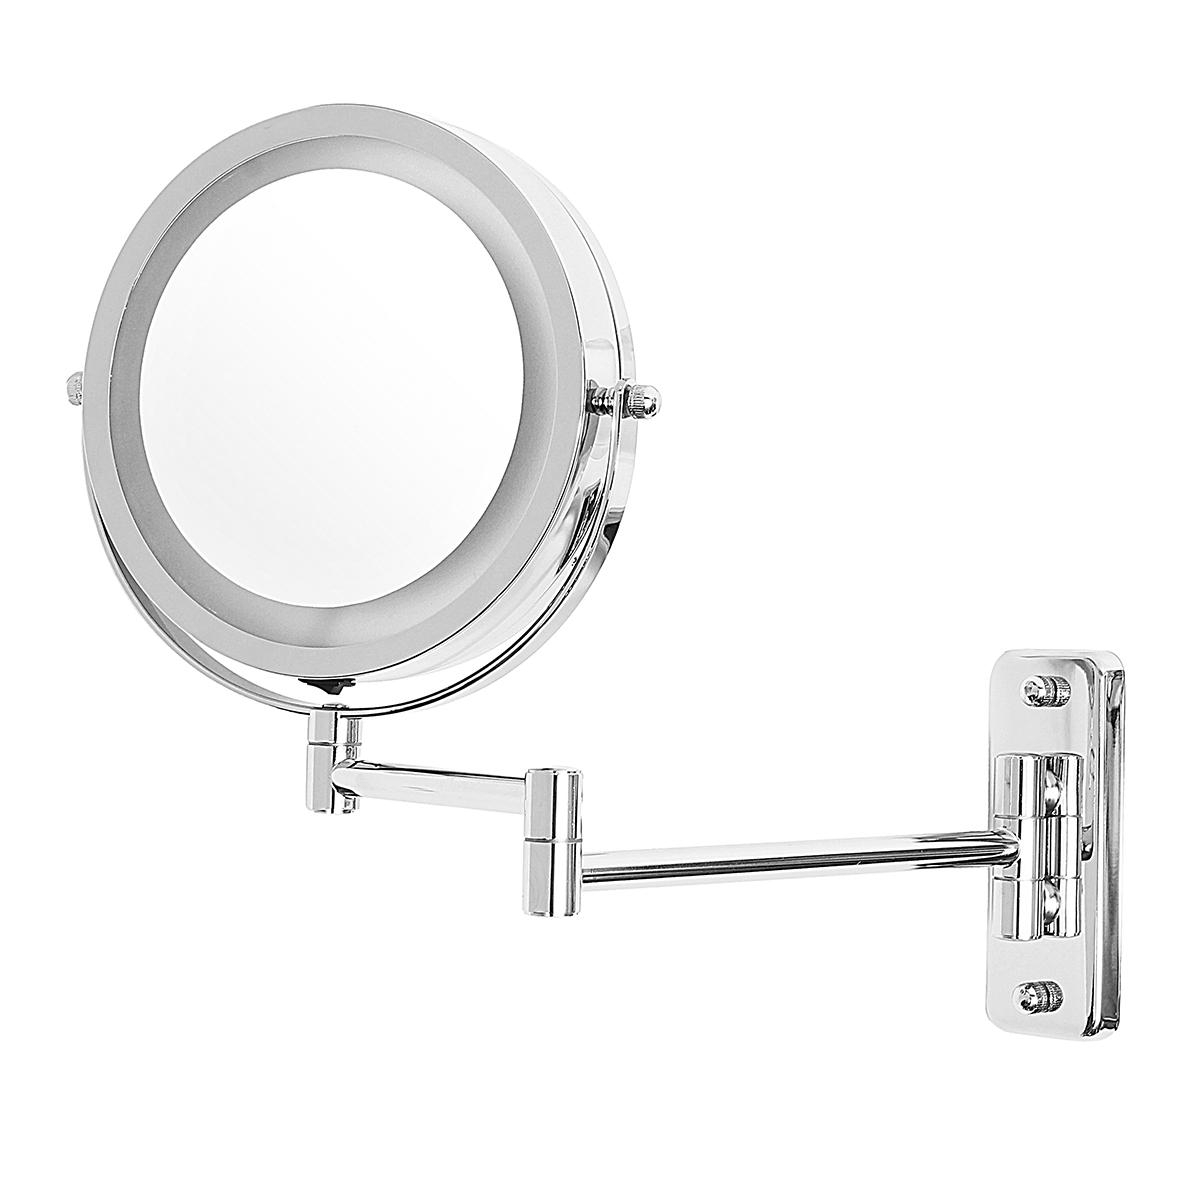 """7"""" Led Lighted Makeup Cosmetic Mirror Bathroom Flexible Floding Adjustable Wall Mounted Led Mirrors In Preferred Adjustable Wall Mirrors (Gallery 7 of 20)"""